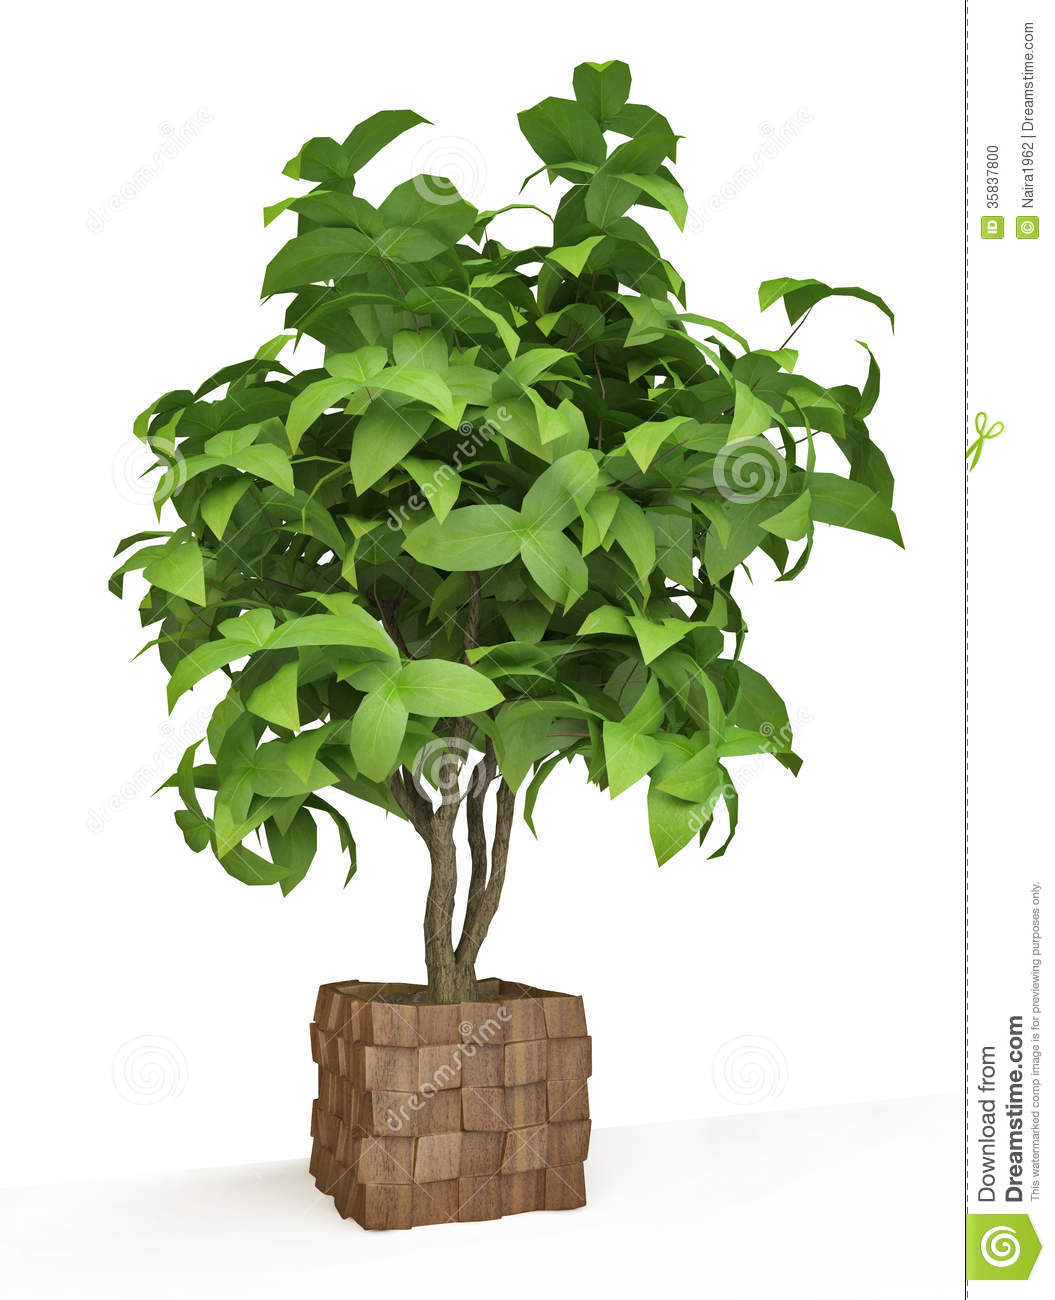 Arbre d coratif de plante d 39 int rieur illustration stock for Arbres artificiels interieur